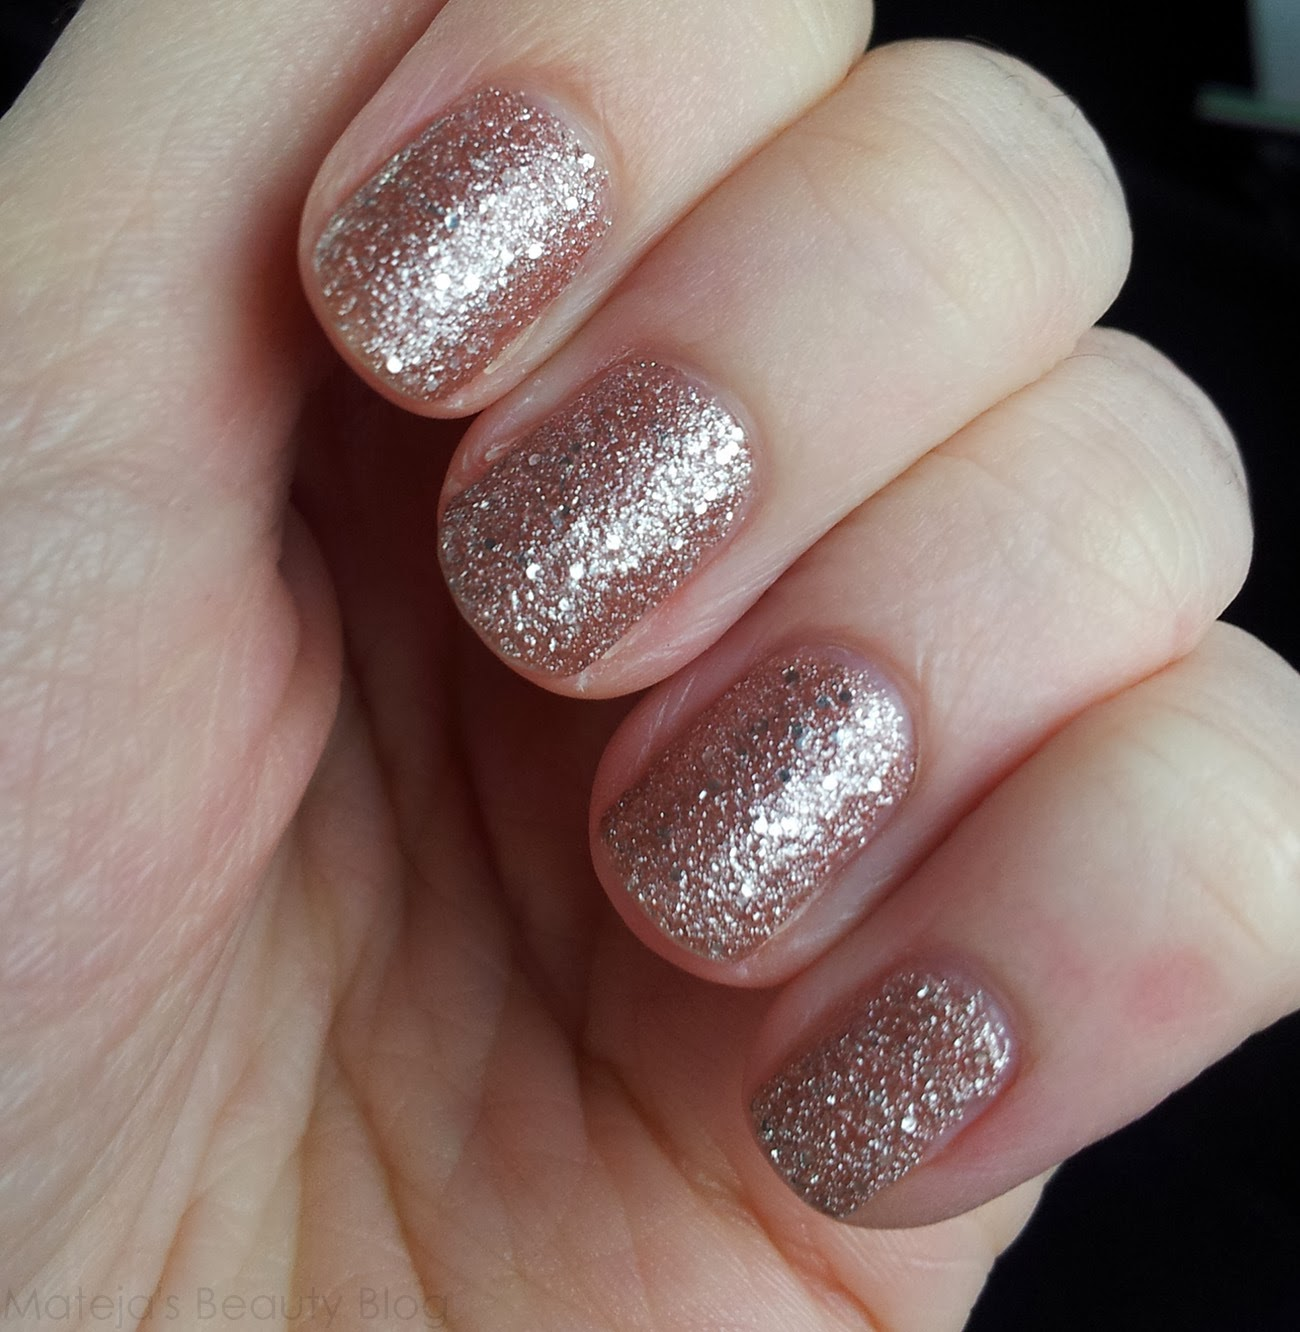 Star dust nail lacquer guerlain 25 - Rimmel Isn T Sold In My Country So I Got It Off Asos For 5 60